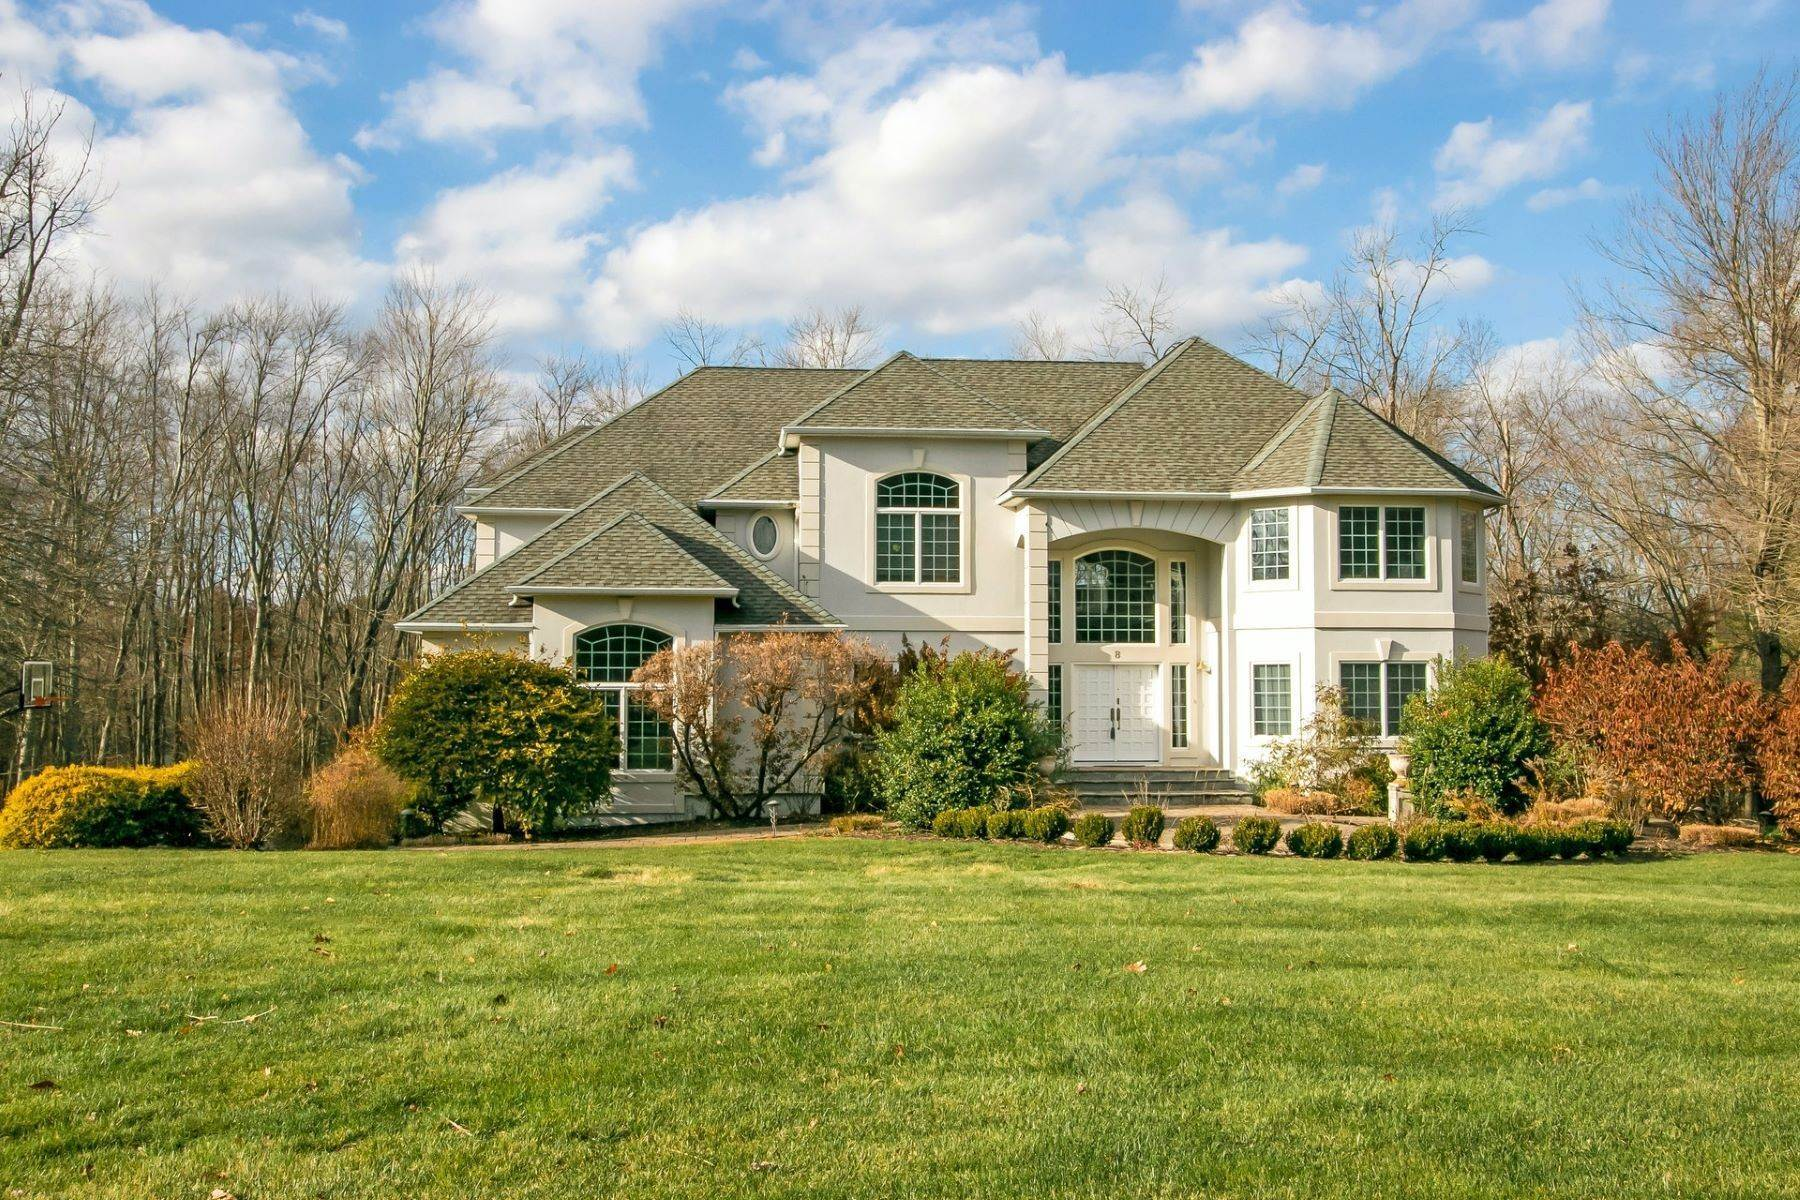 Single Family Homes for Sale at Magnificent Center Hall Colonial 8 Pvt Lovett Court Blauvelt, New York 10913 United States